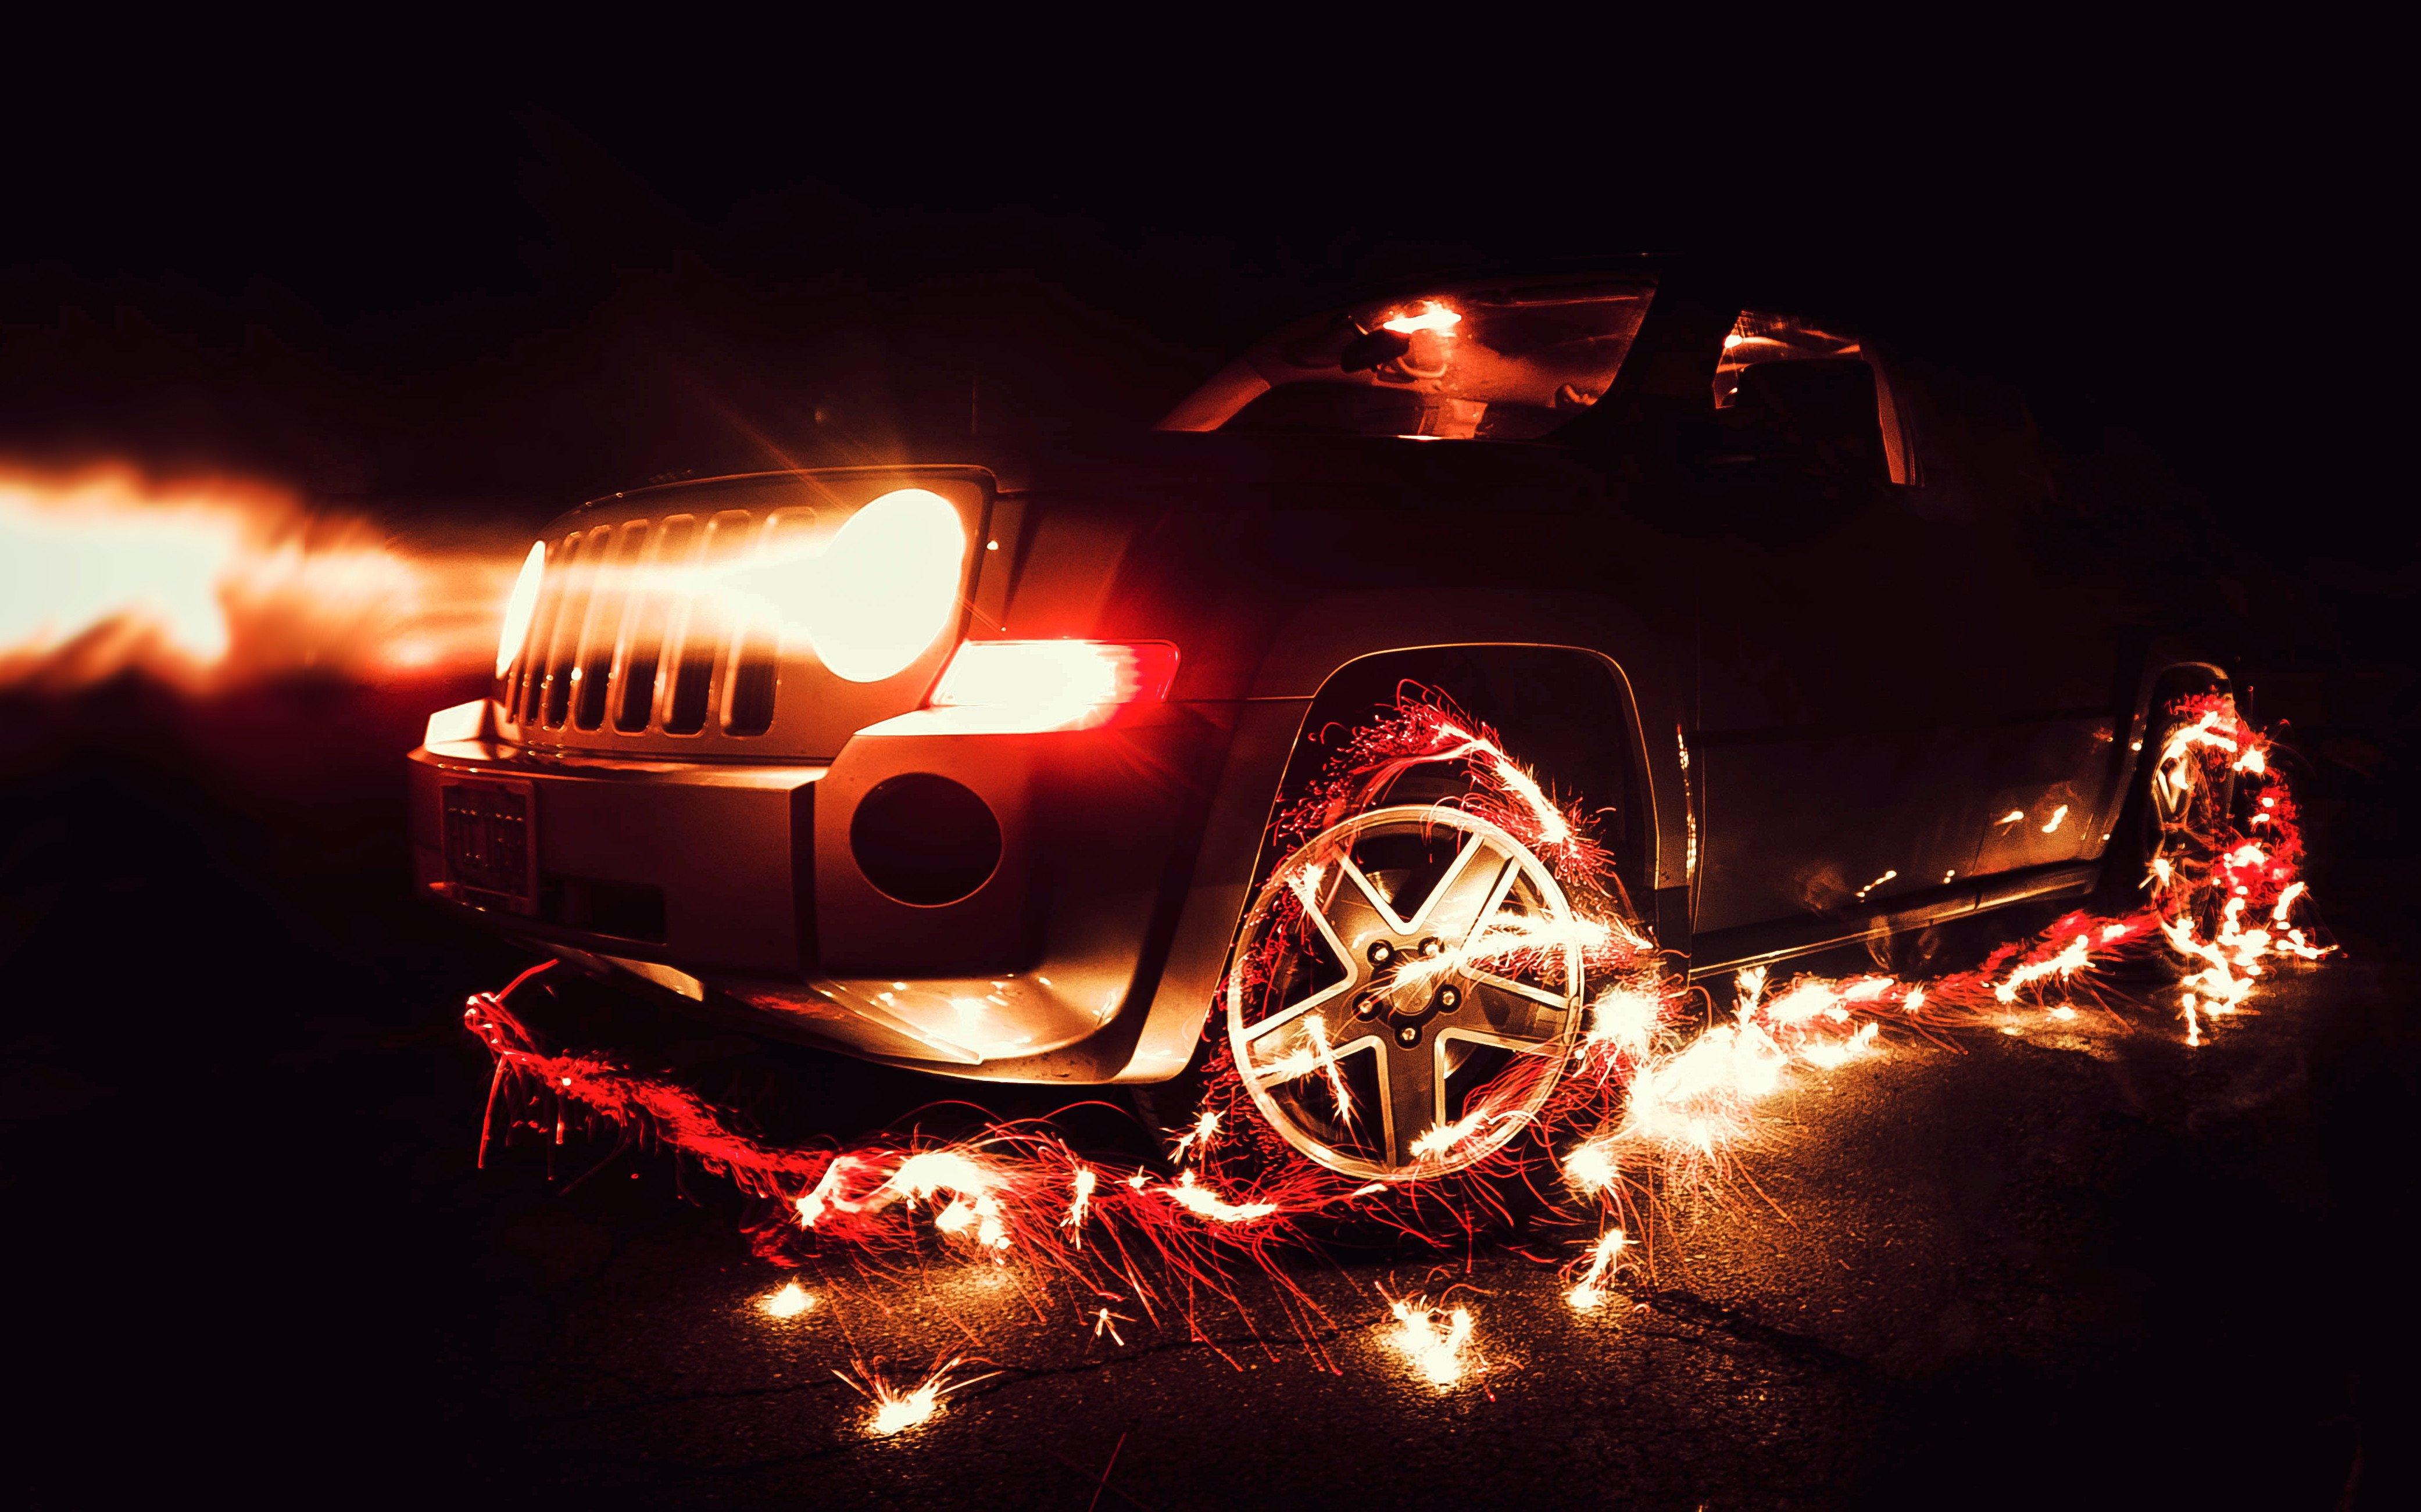 Jeep 4k Wallpapers For Your Desktop Or Mobile Screen Free And Easy To Download